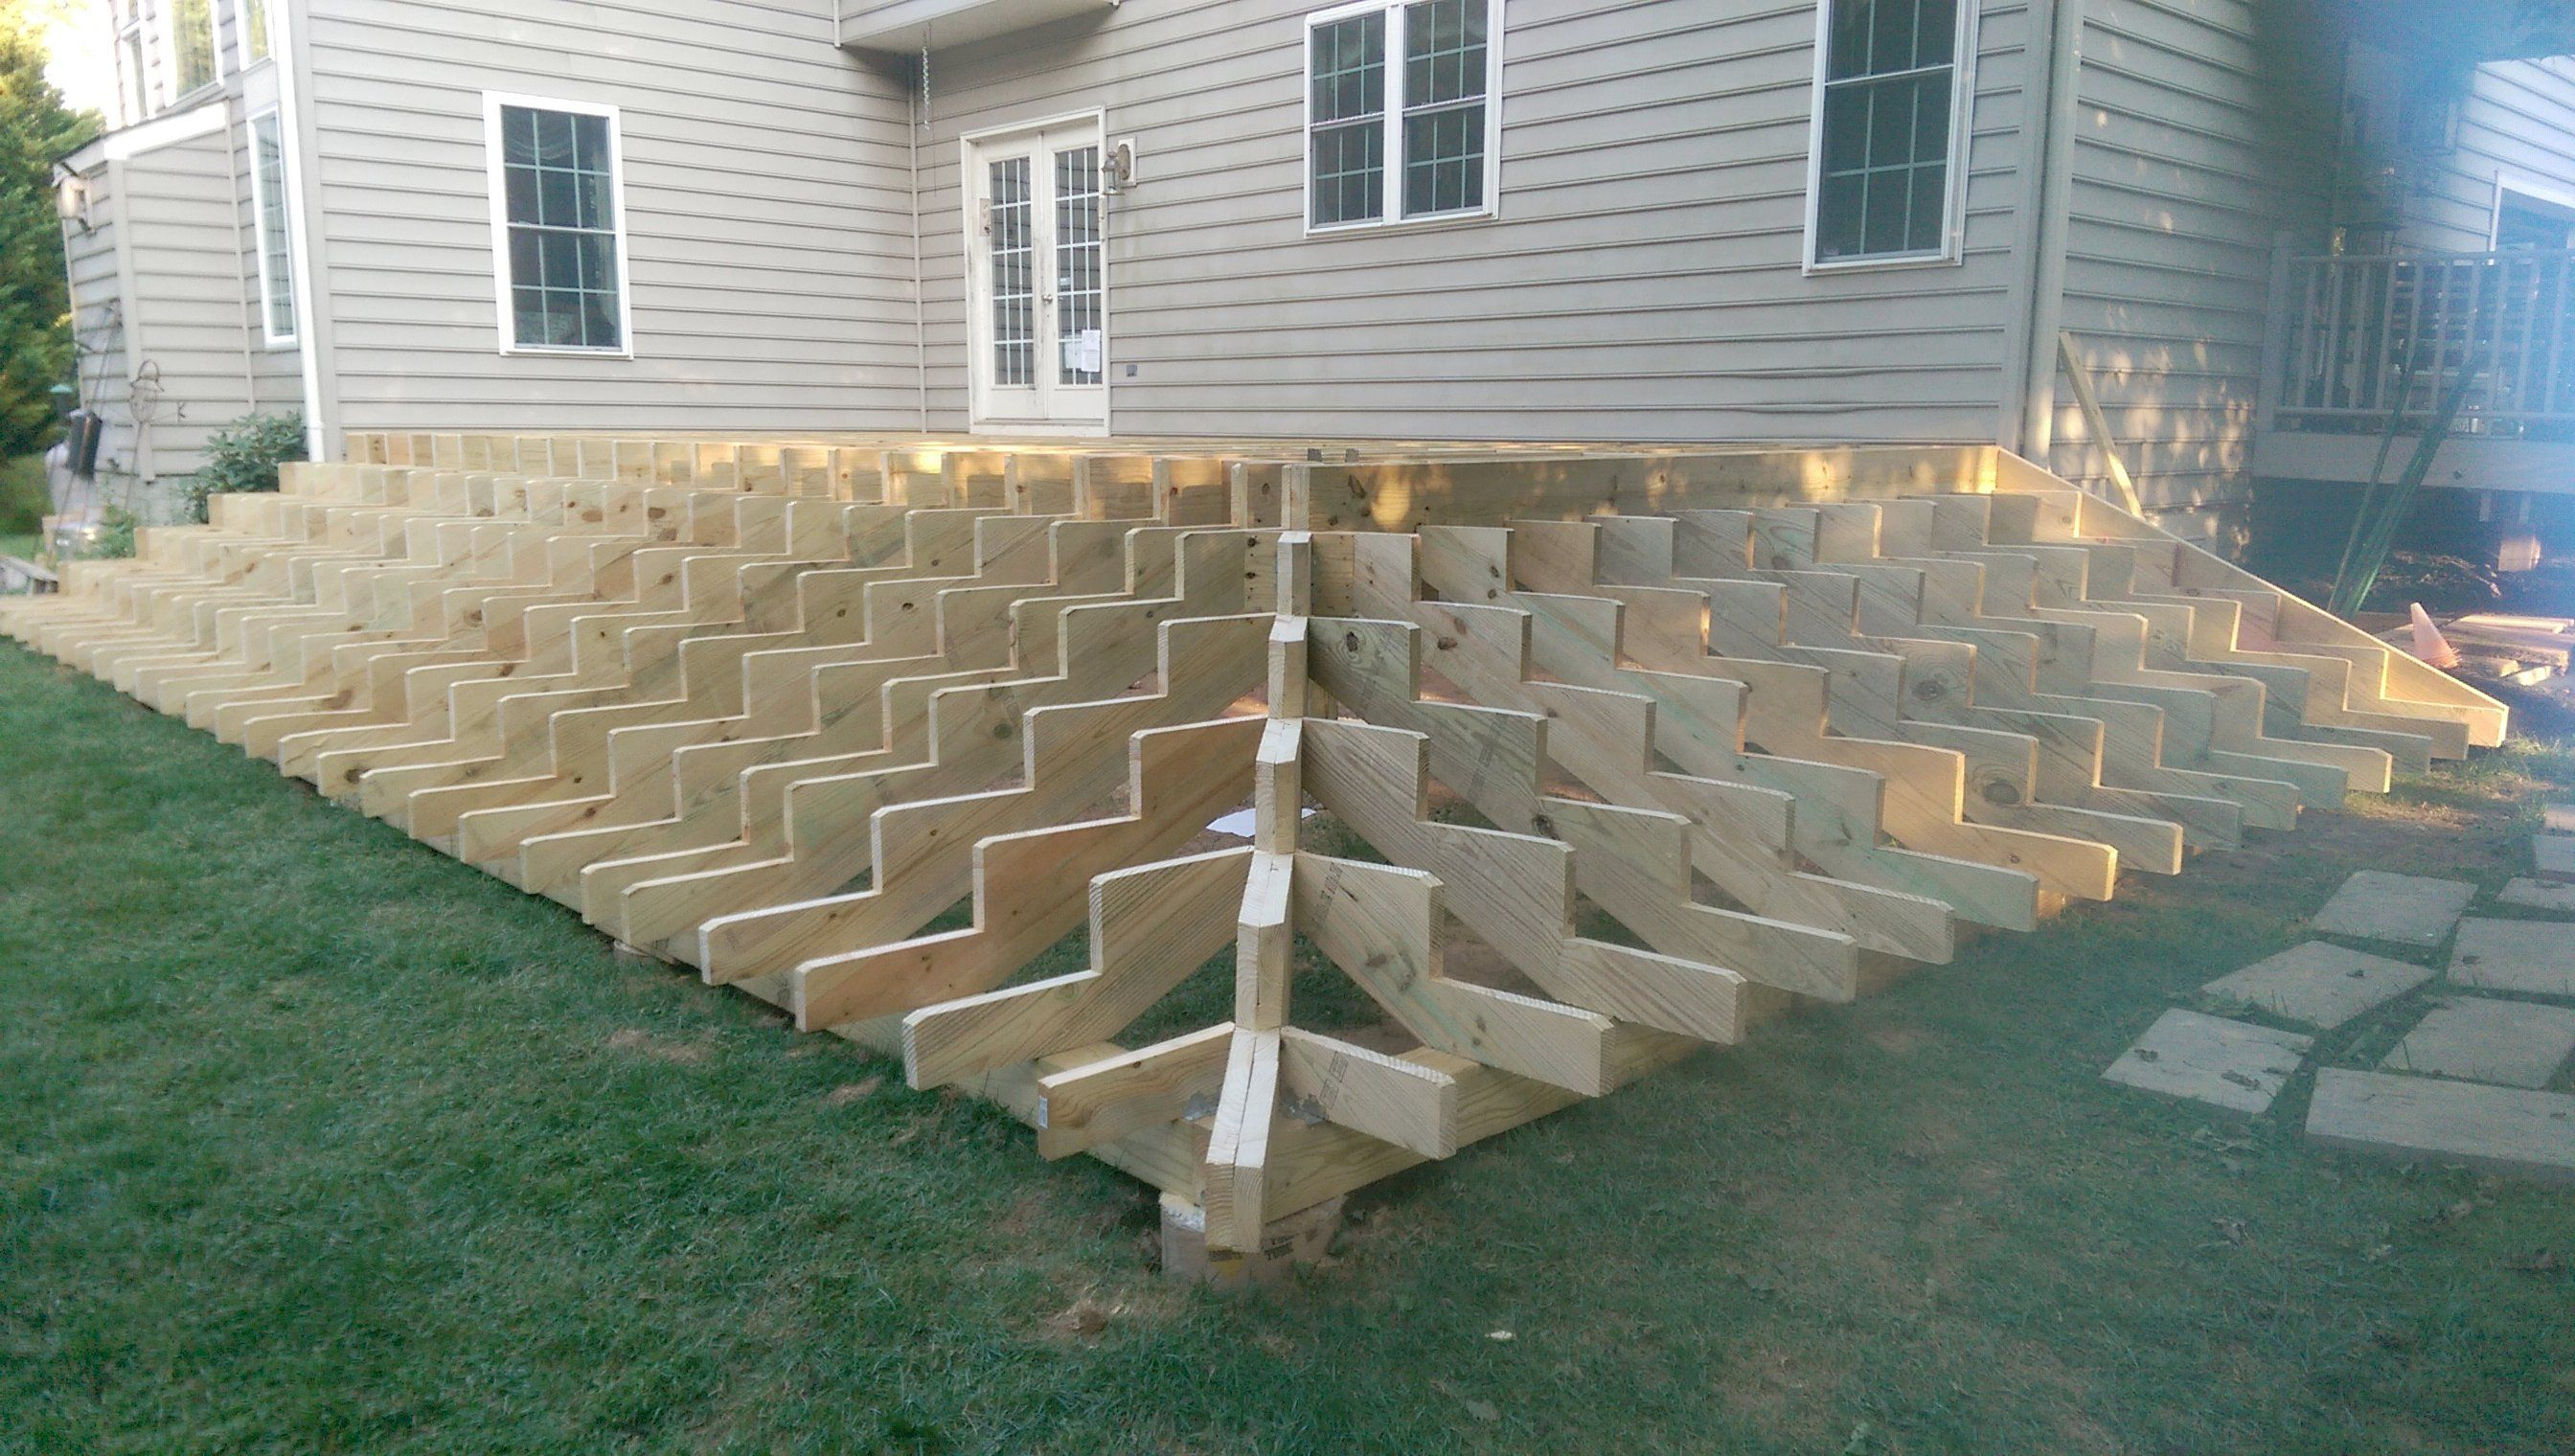 Gentil Deck With Stairs All Around Deck 29 X 14 With Stairs Around Two Sides